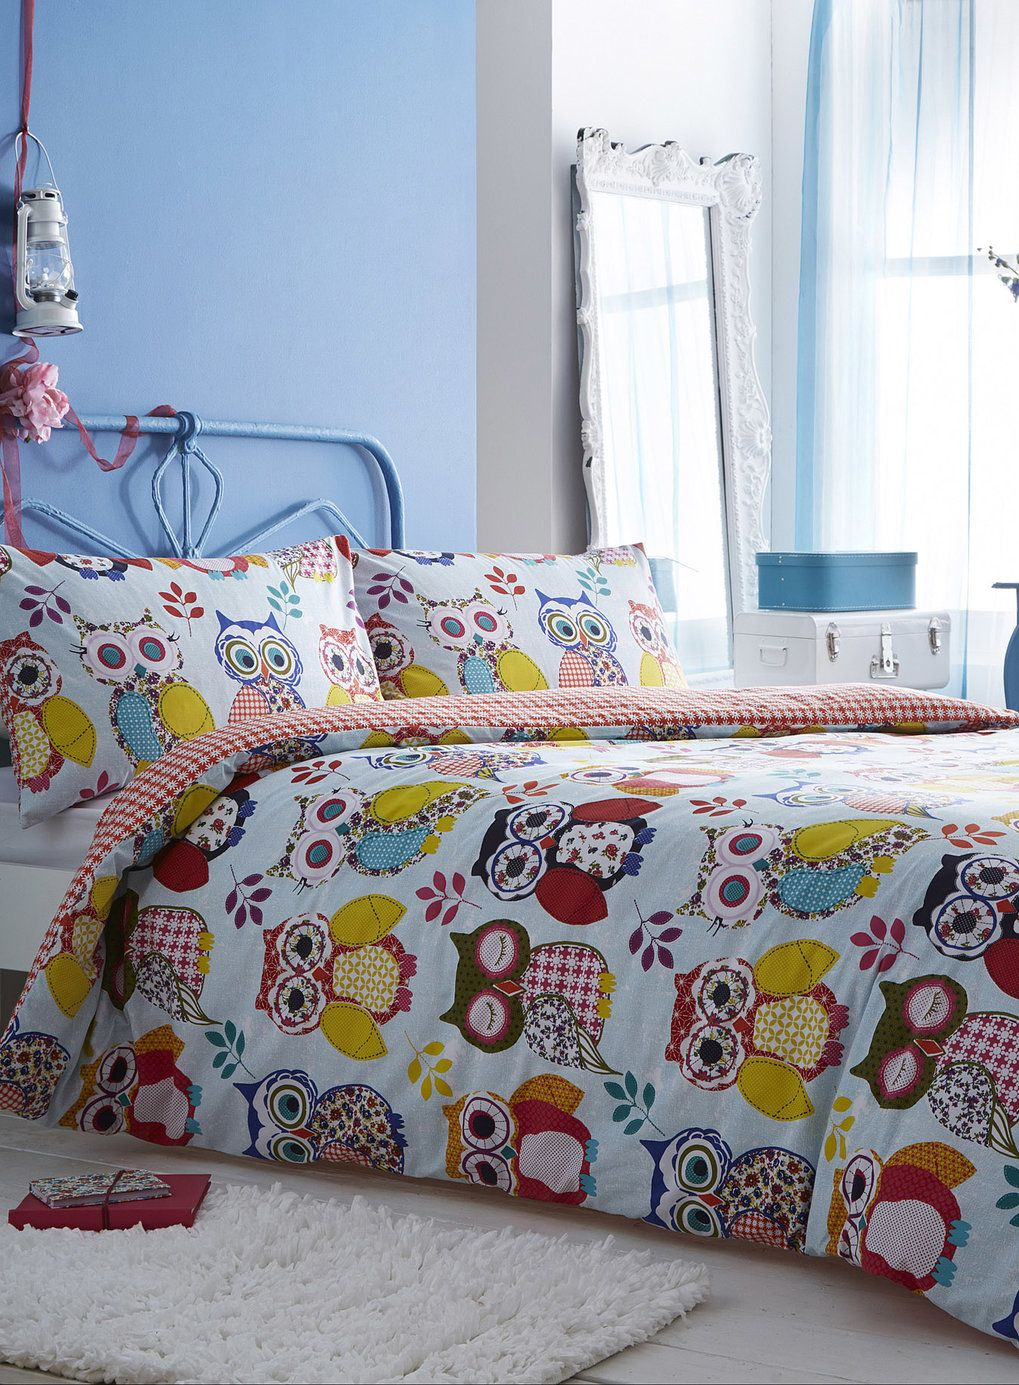 Baby Owl Bedroom Set: Summer Owl Bedding Set Pinned By Www.myowlbarn.com